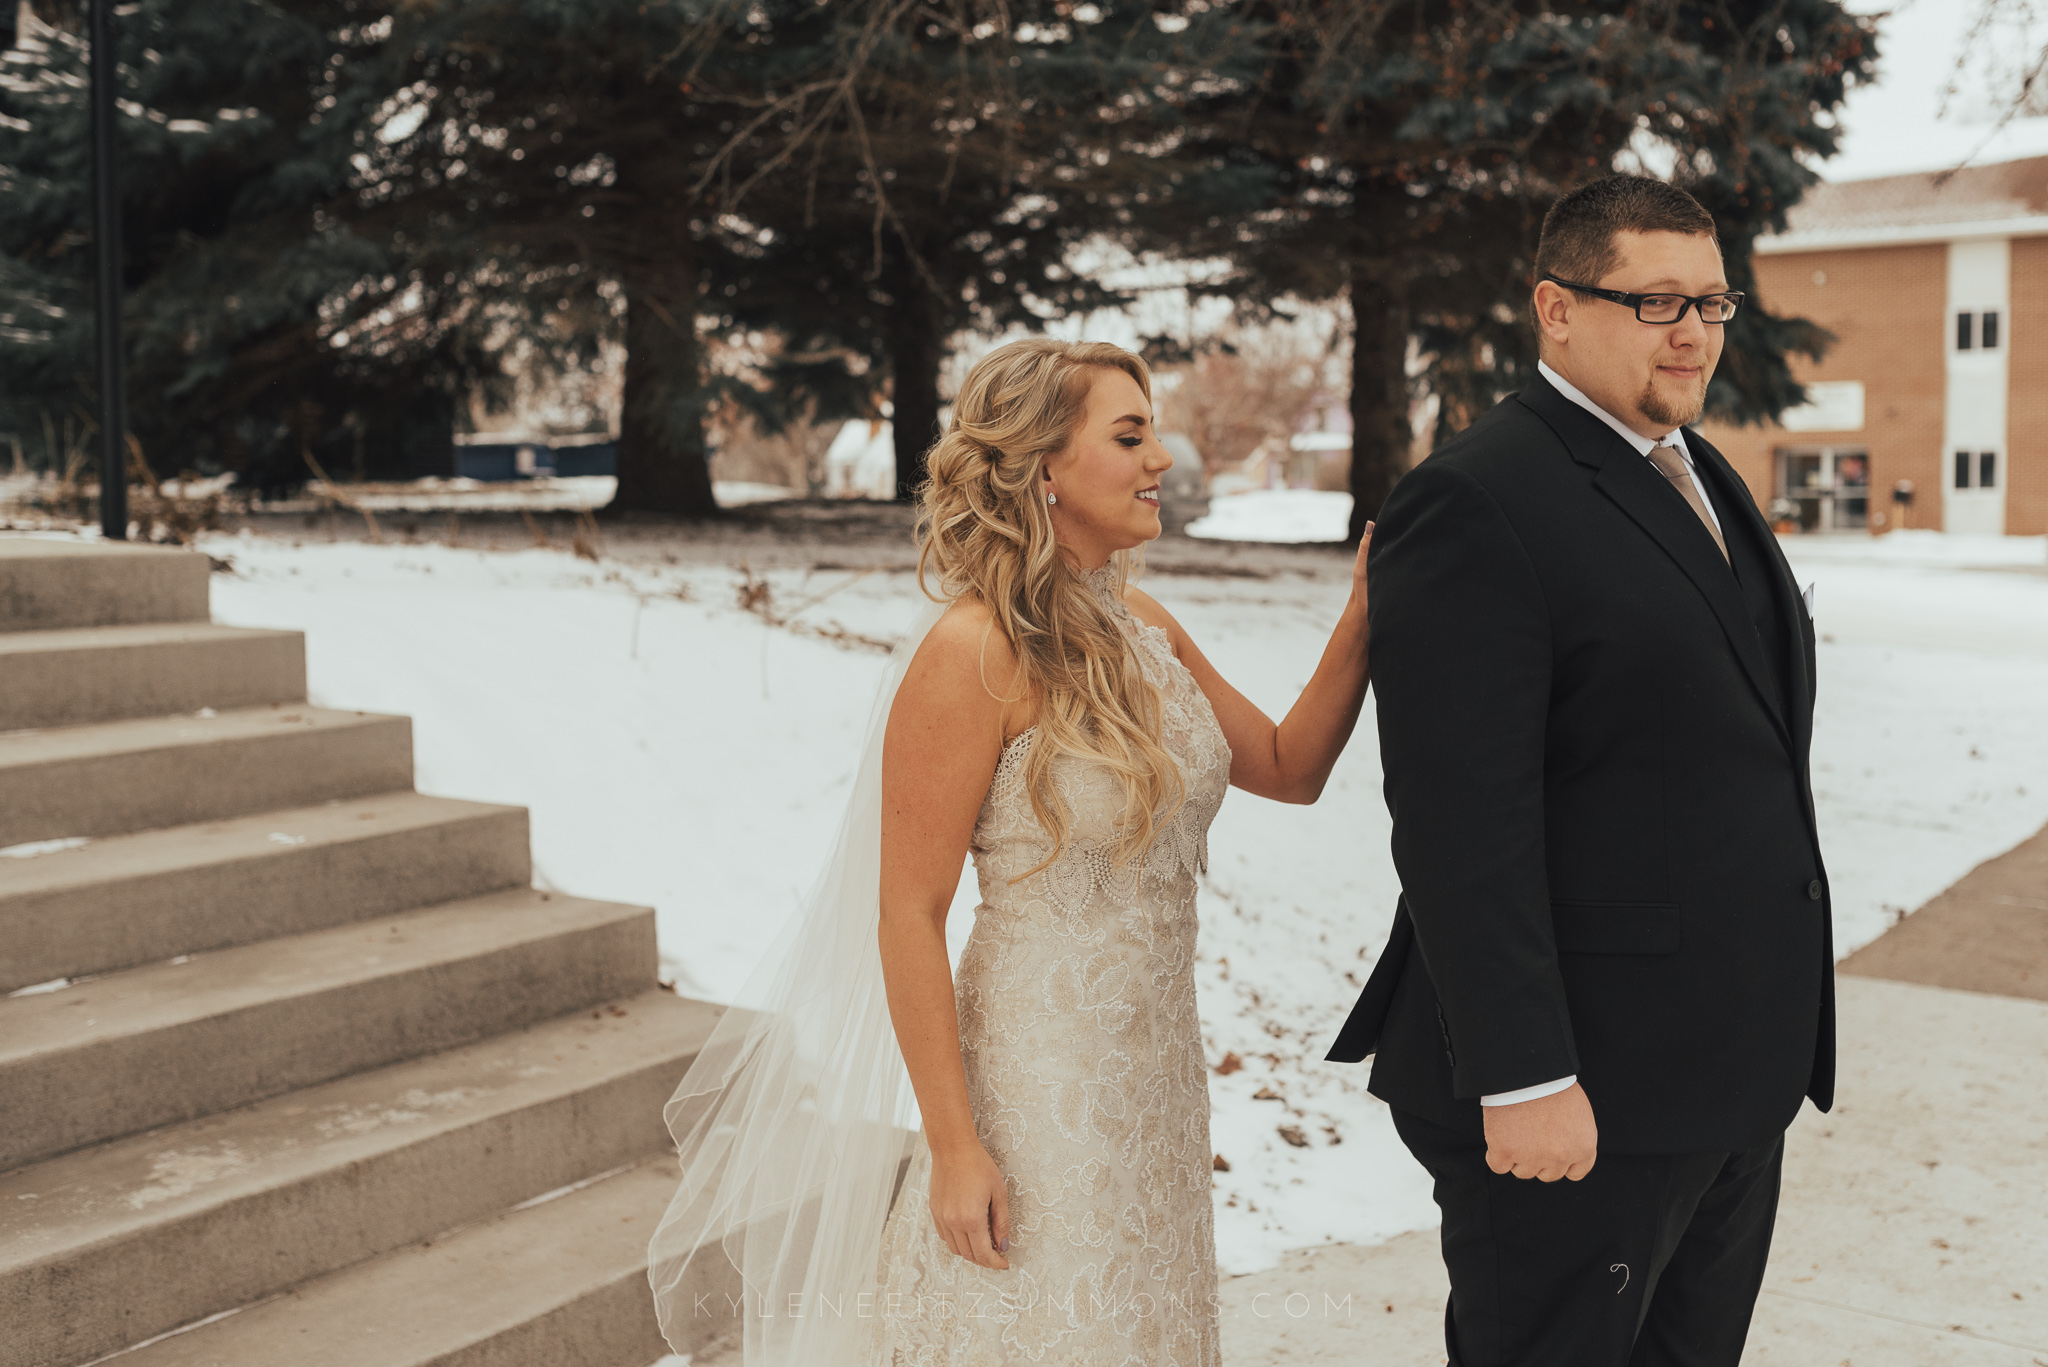 giannonatti-minnesota-winter-wedding-18.jpg